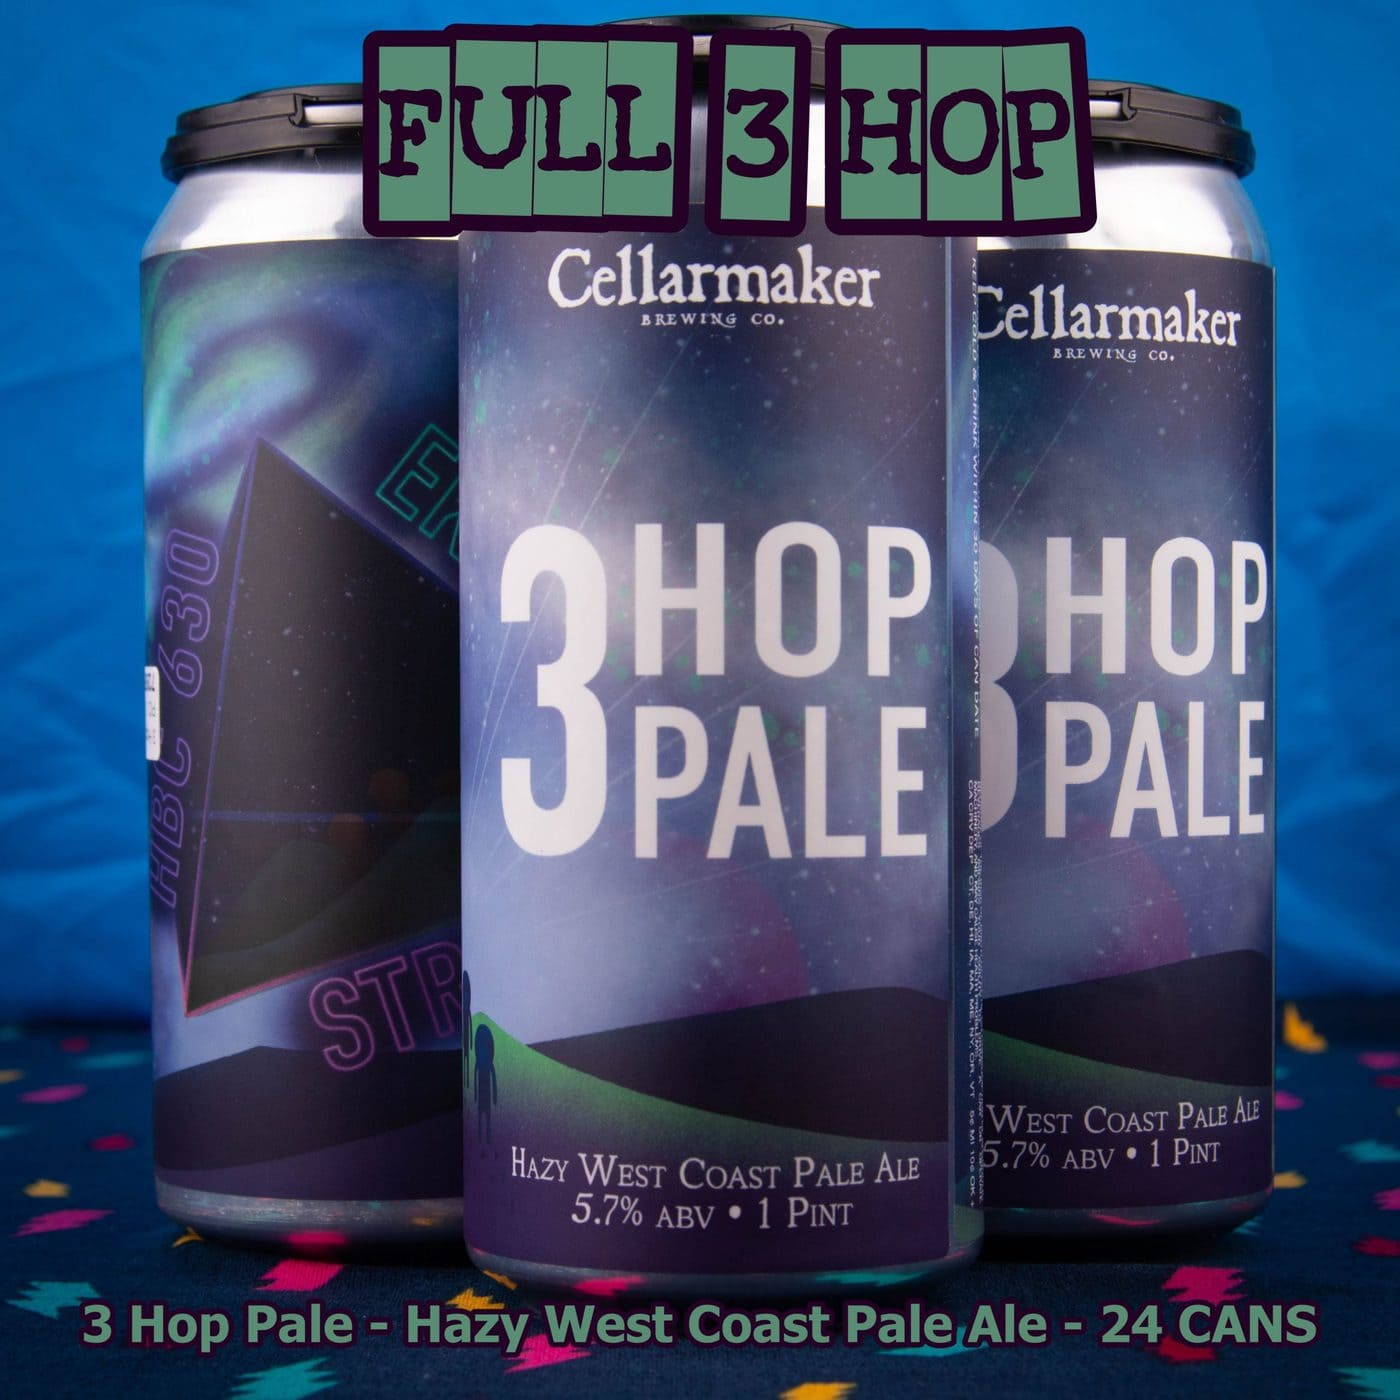 FULL CASE 24 CANS Three Hop Pale Ale – Shipping Out Tuesday 5/11 For Next Day Delivery*